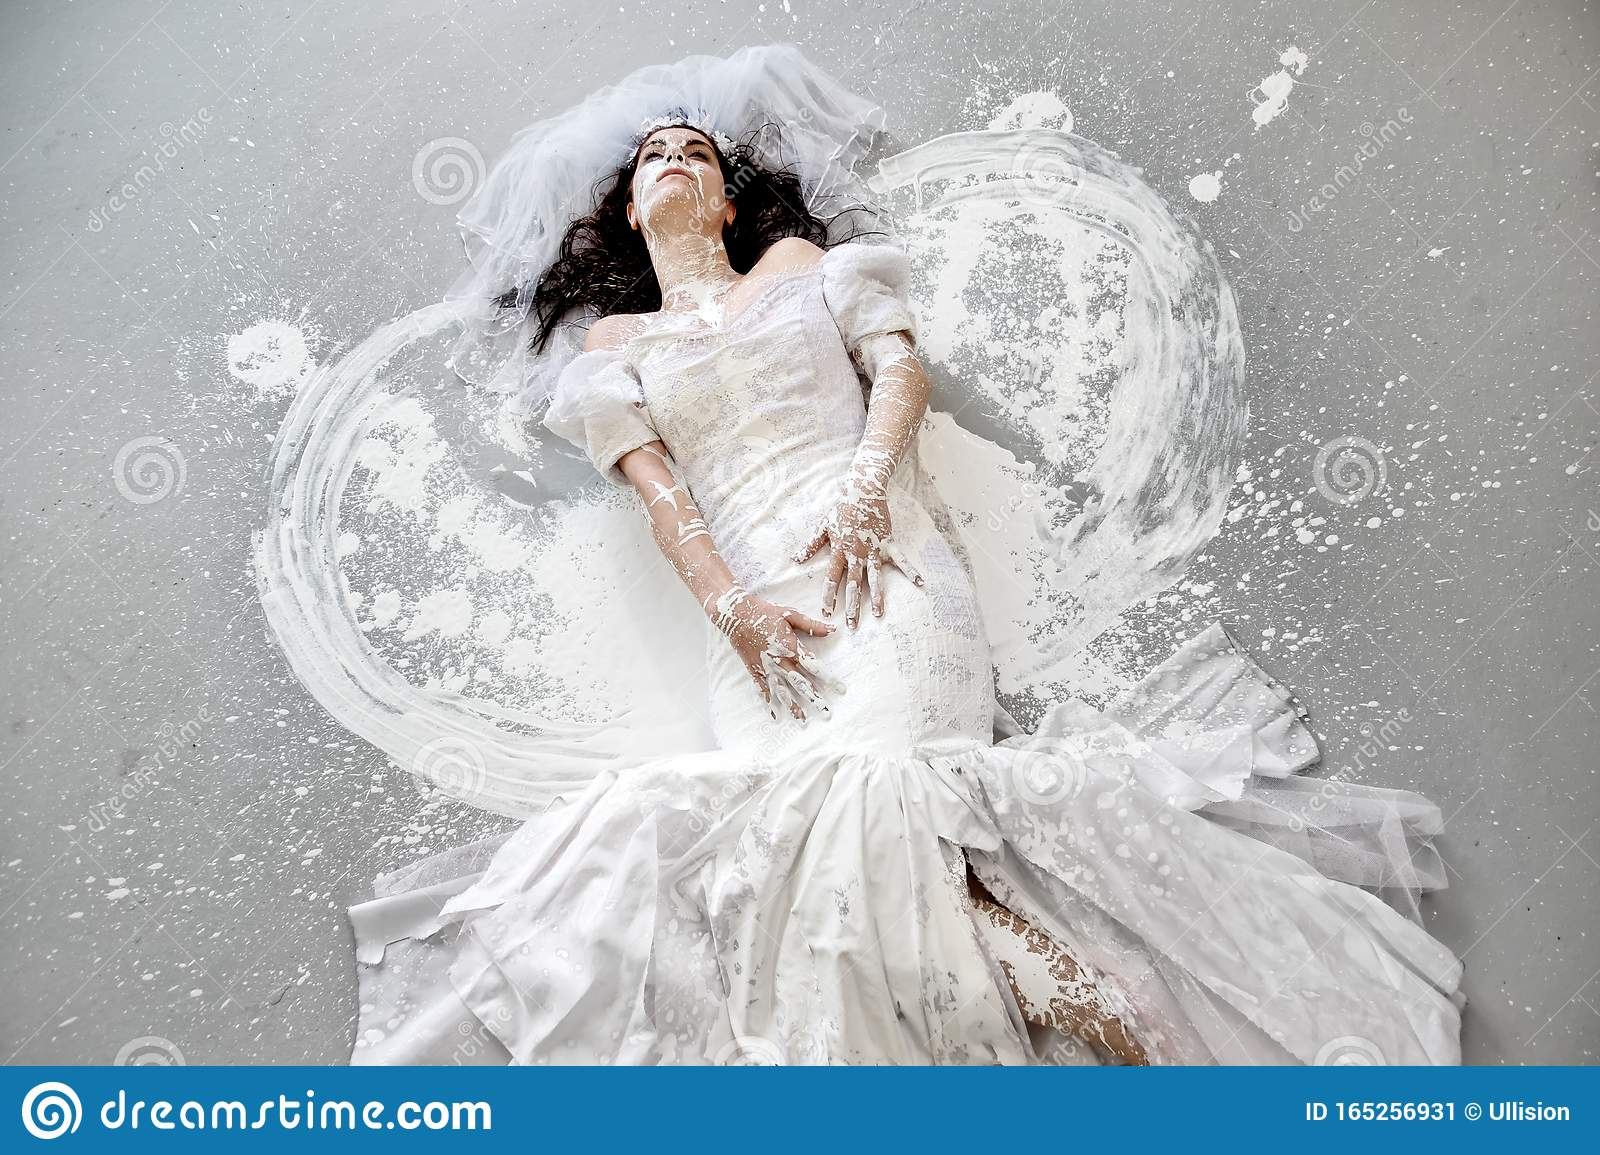 Beautiful Young Artistically Abstract Painted Woman Bride In Wedding Dress With White Paint Abstract Body Art On The Floor In Stock Image Image Of Female Bright 165256931